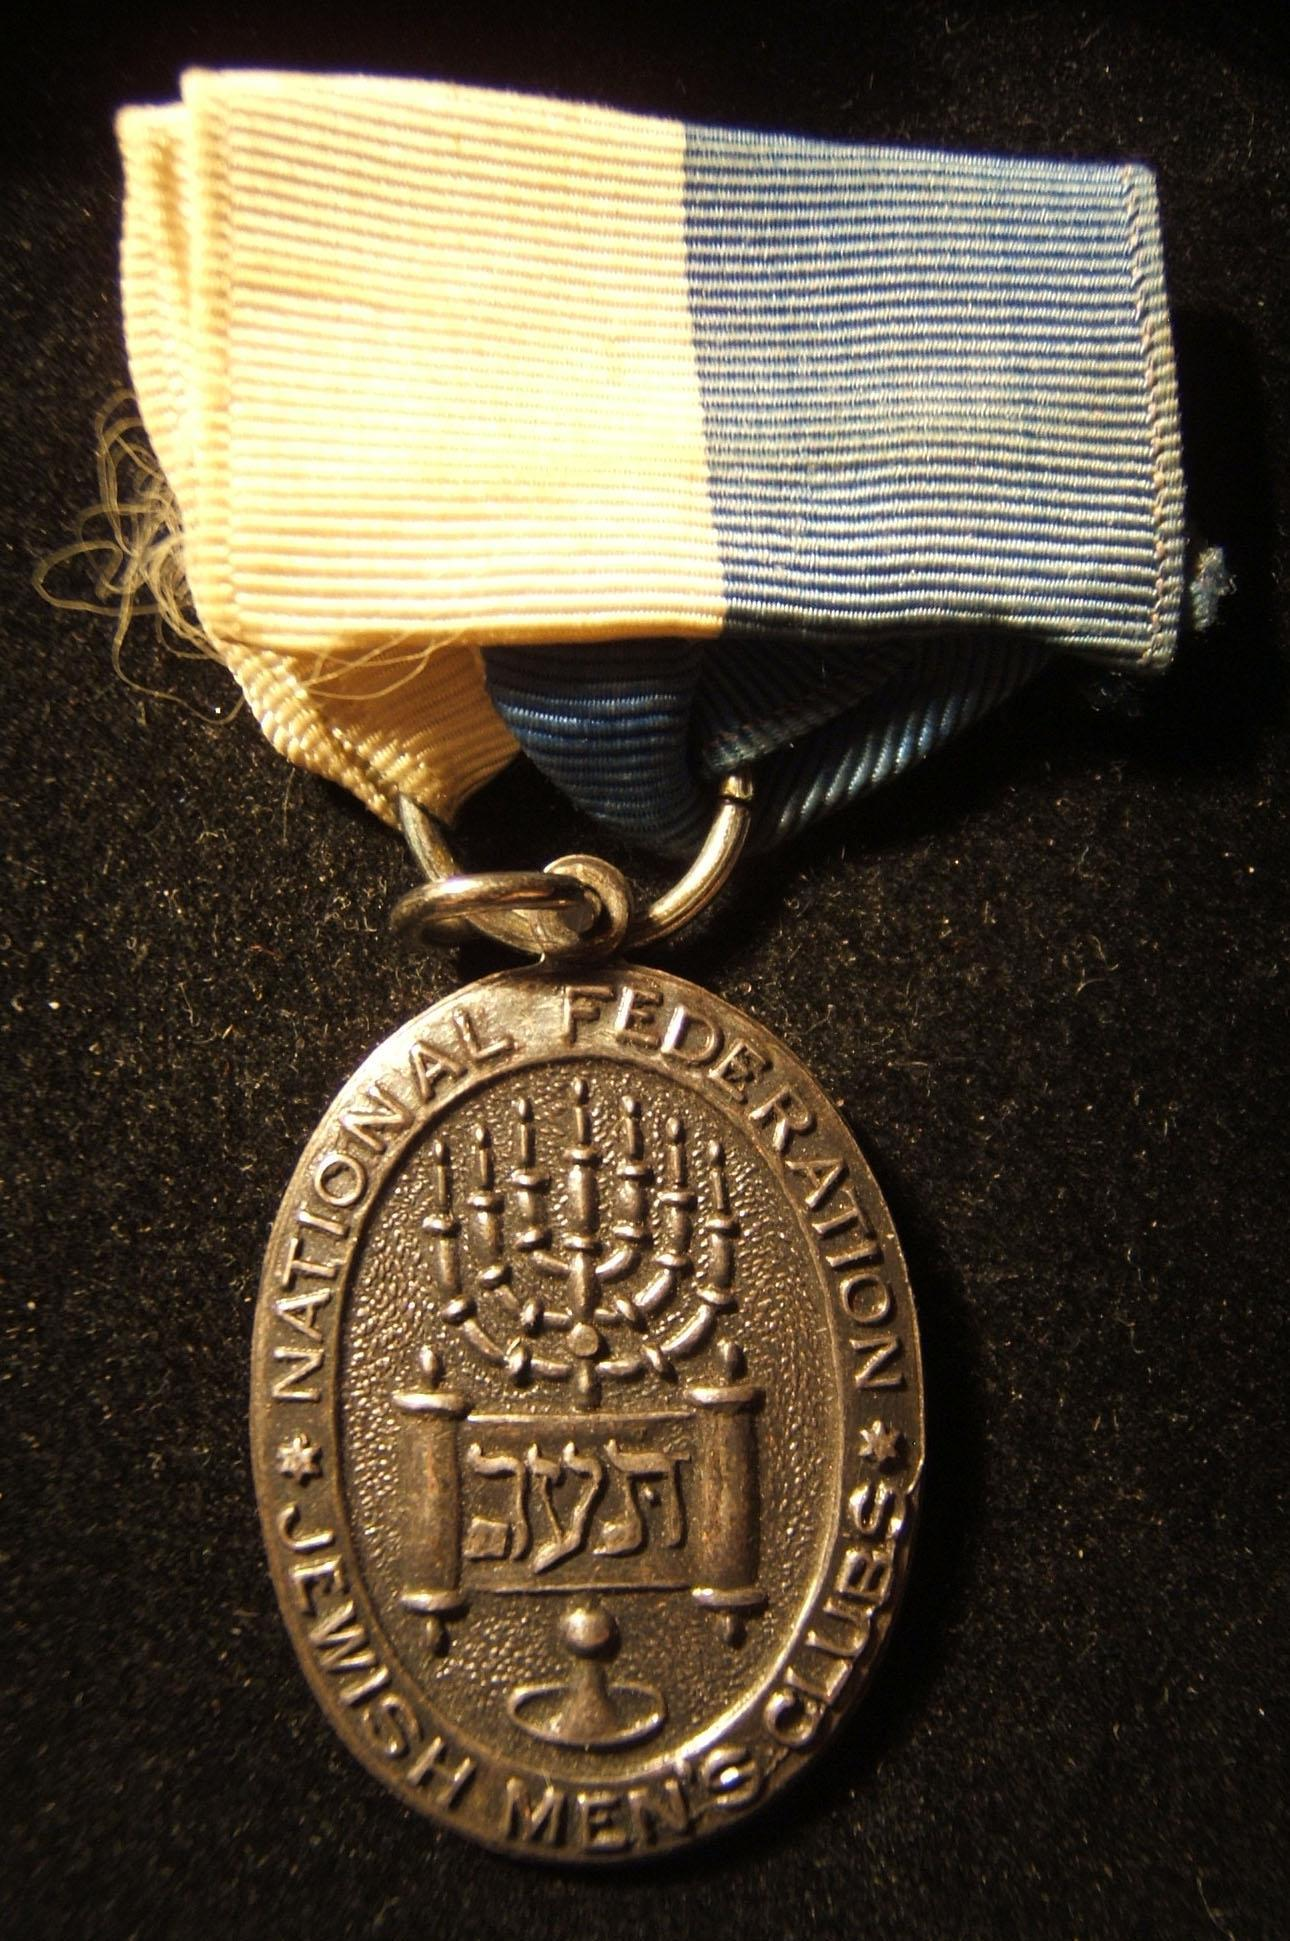 American National Federation of Jewish Men's Clubs silver Judaica medal c. 1940s